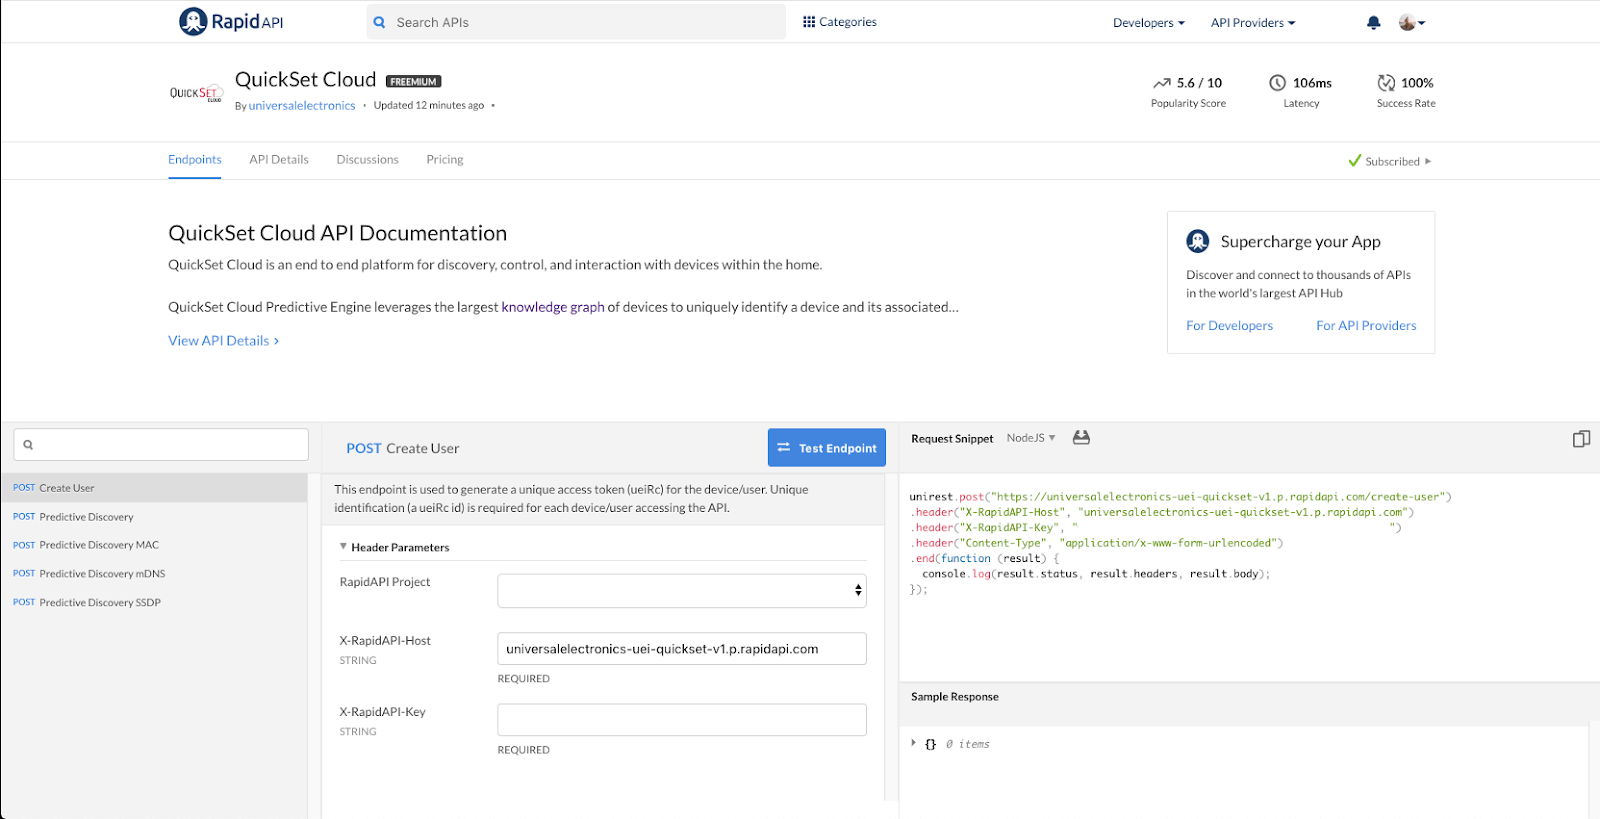 QuickSet Cloud API Listing